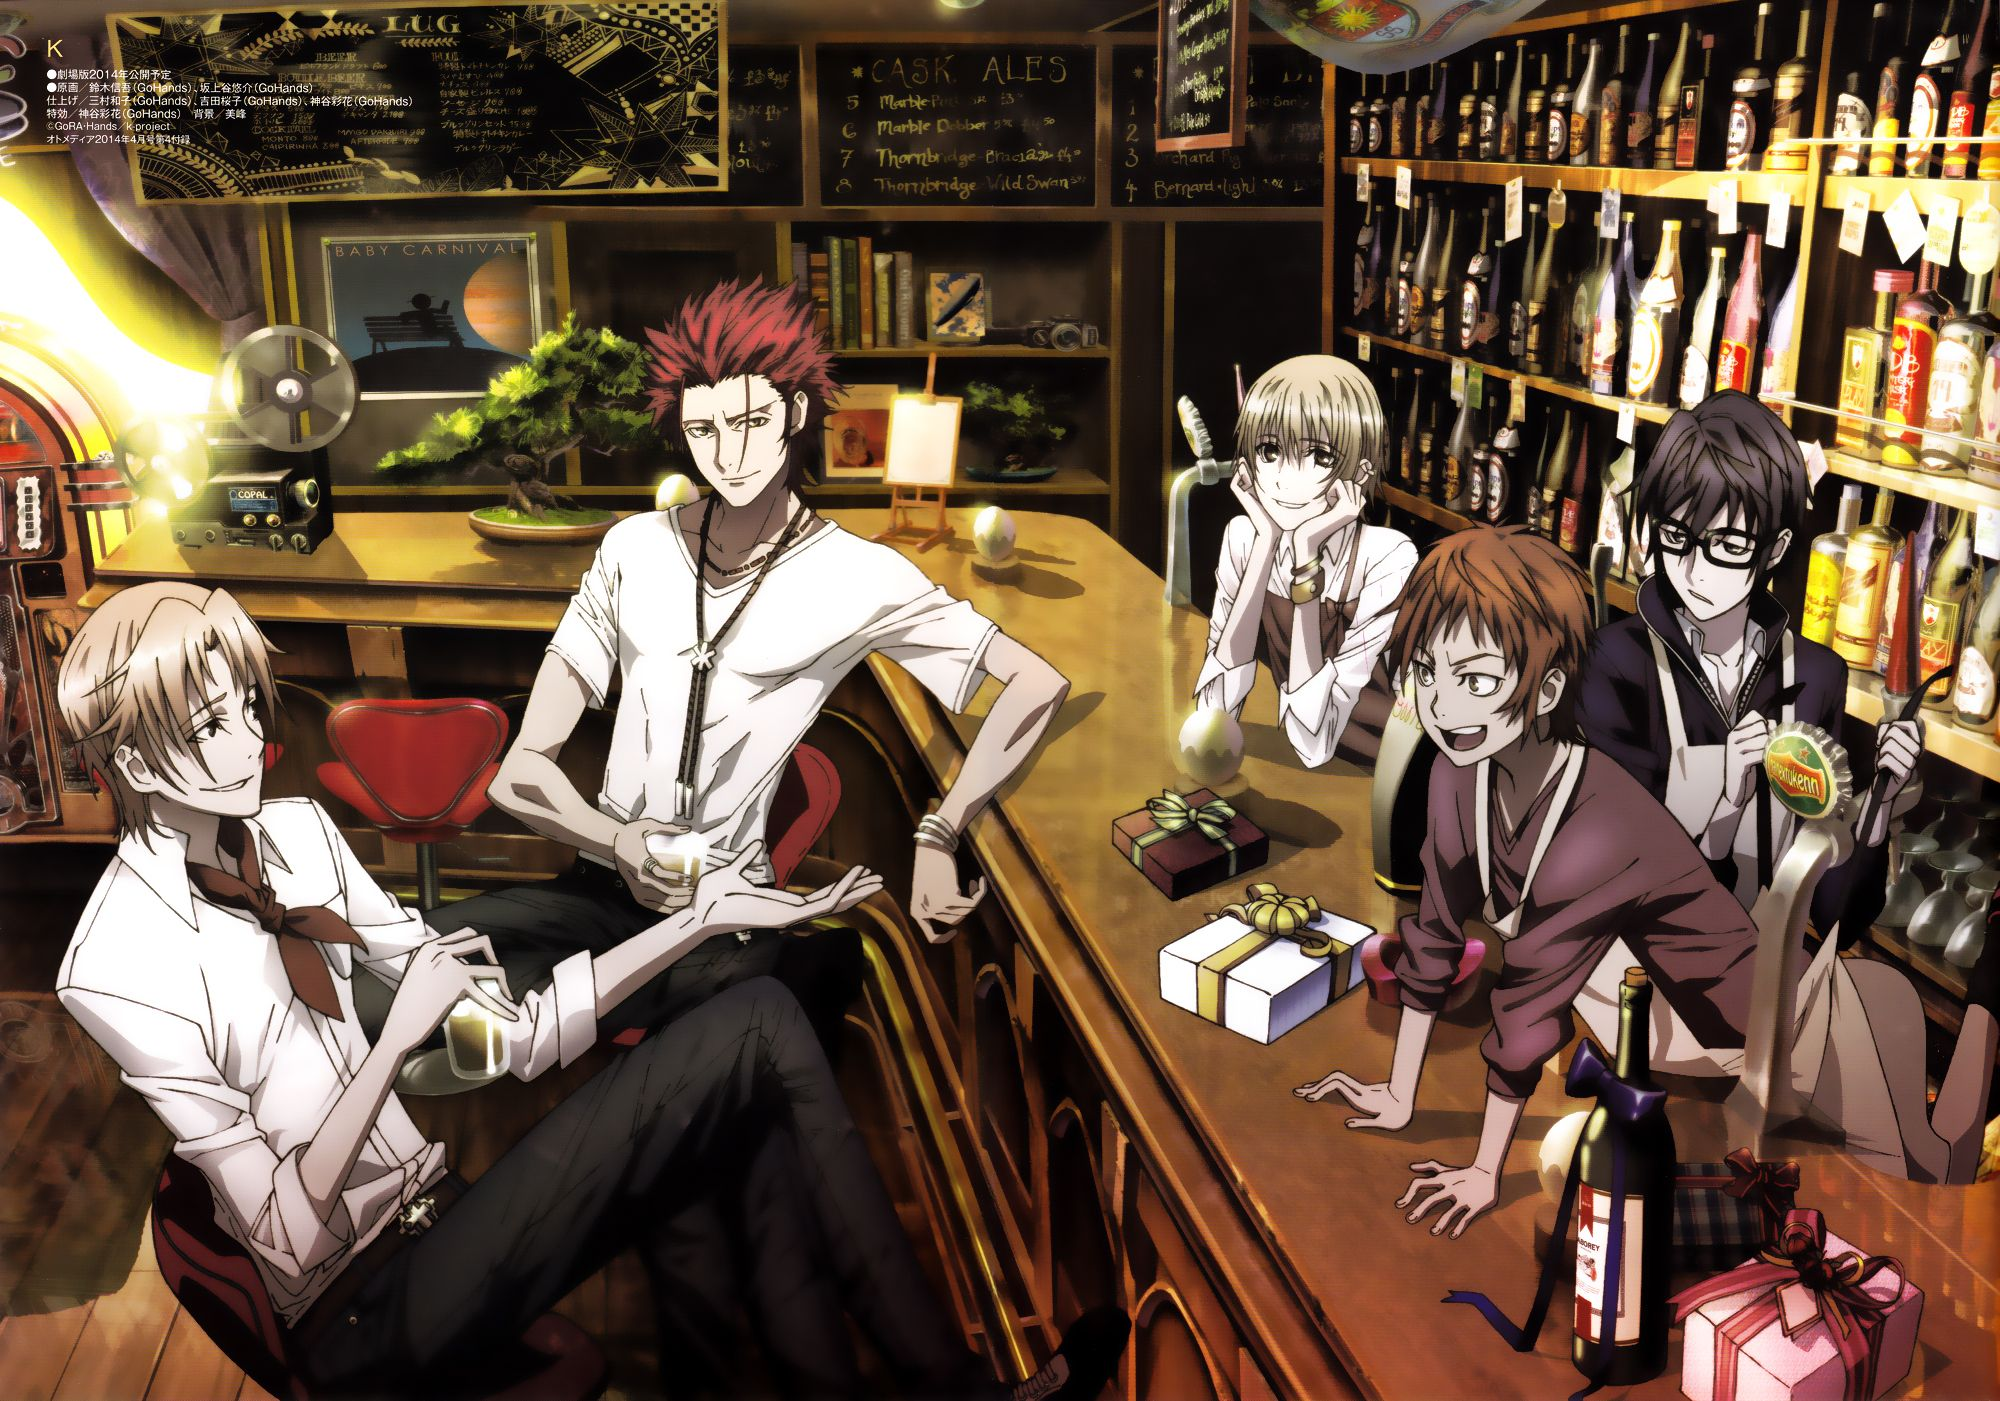 Red Clan Homra Computer Wallpapers Desktop Backgrounds 2000x1401 Id 629302 K Project Anime K Project K Project Anime